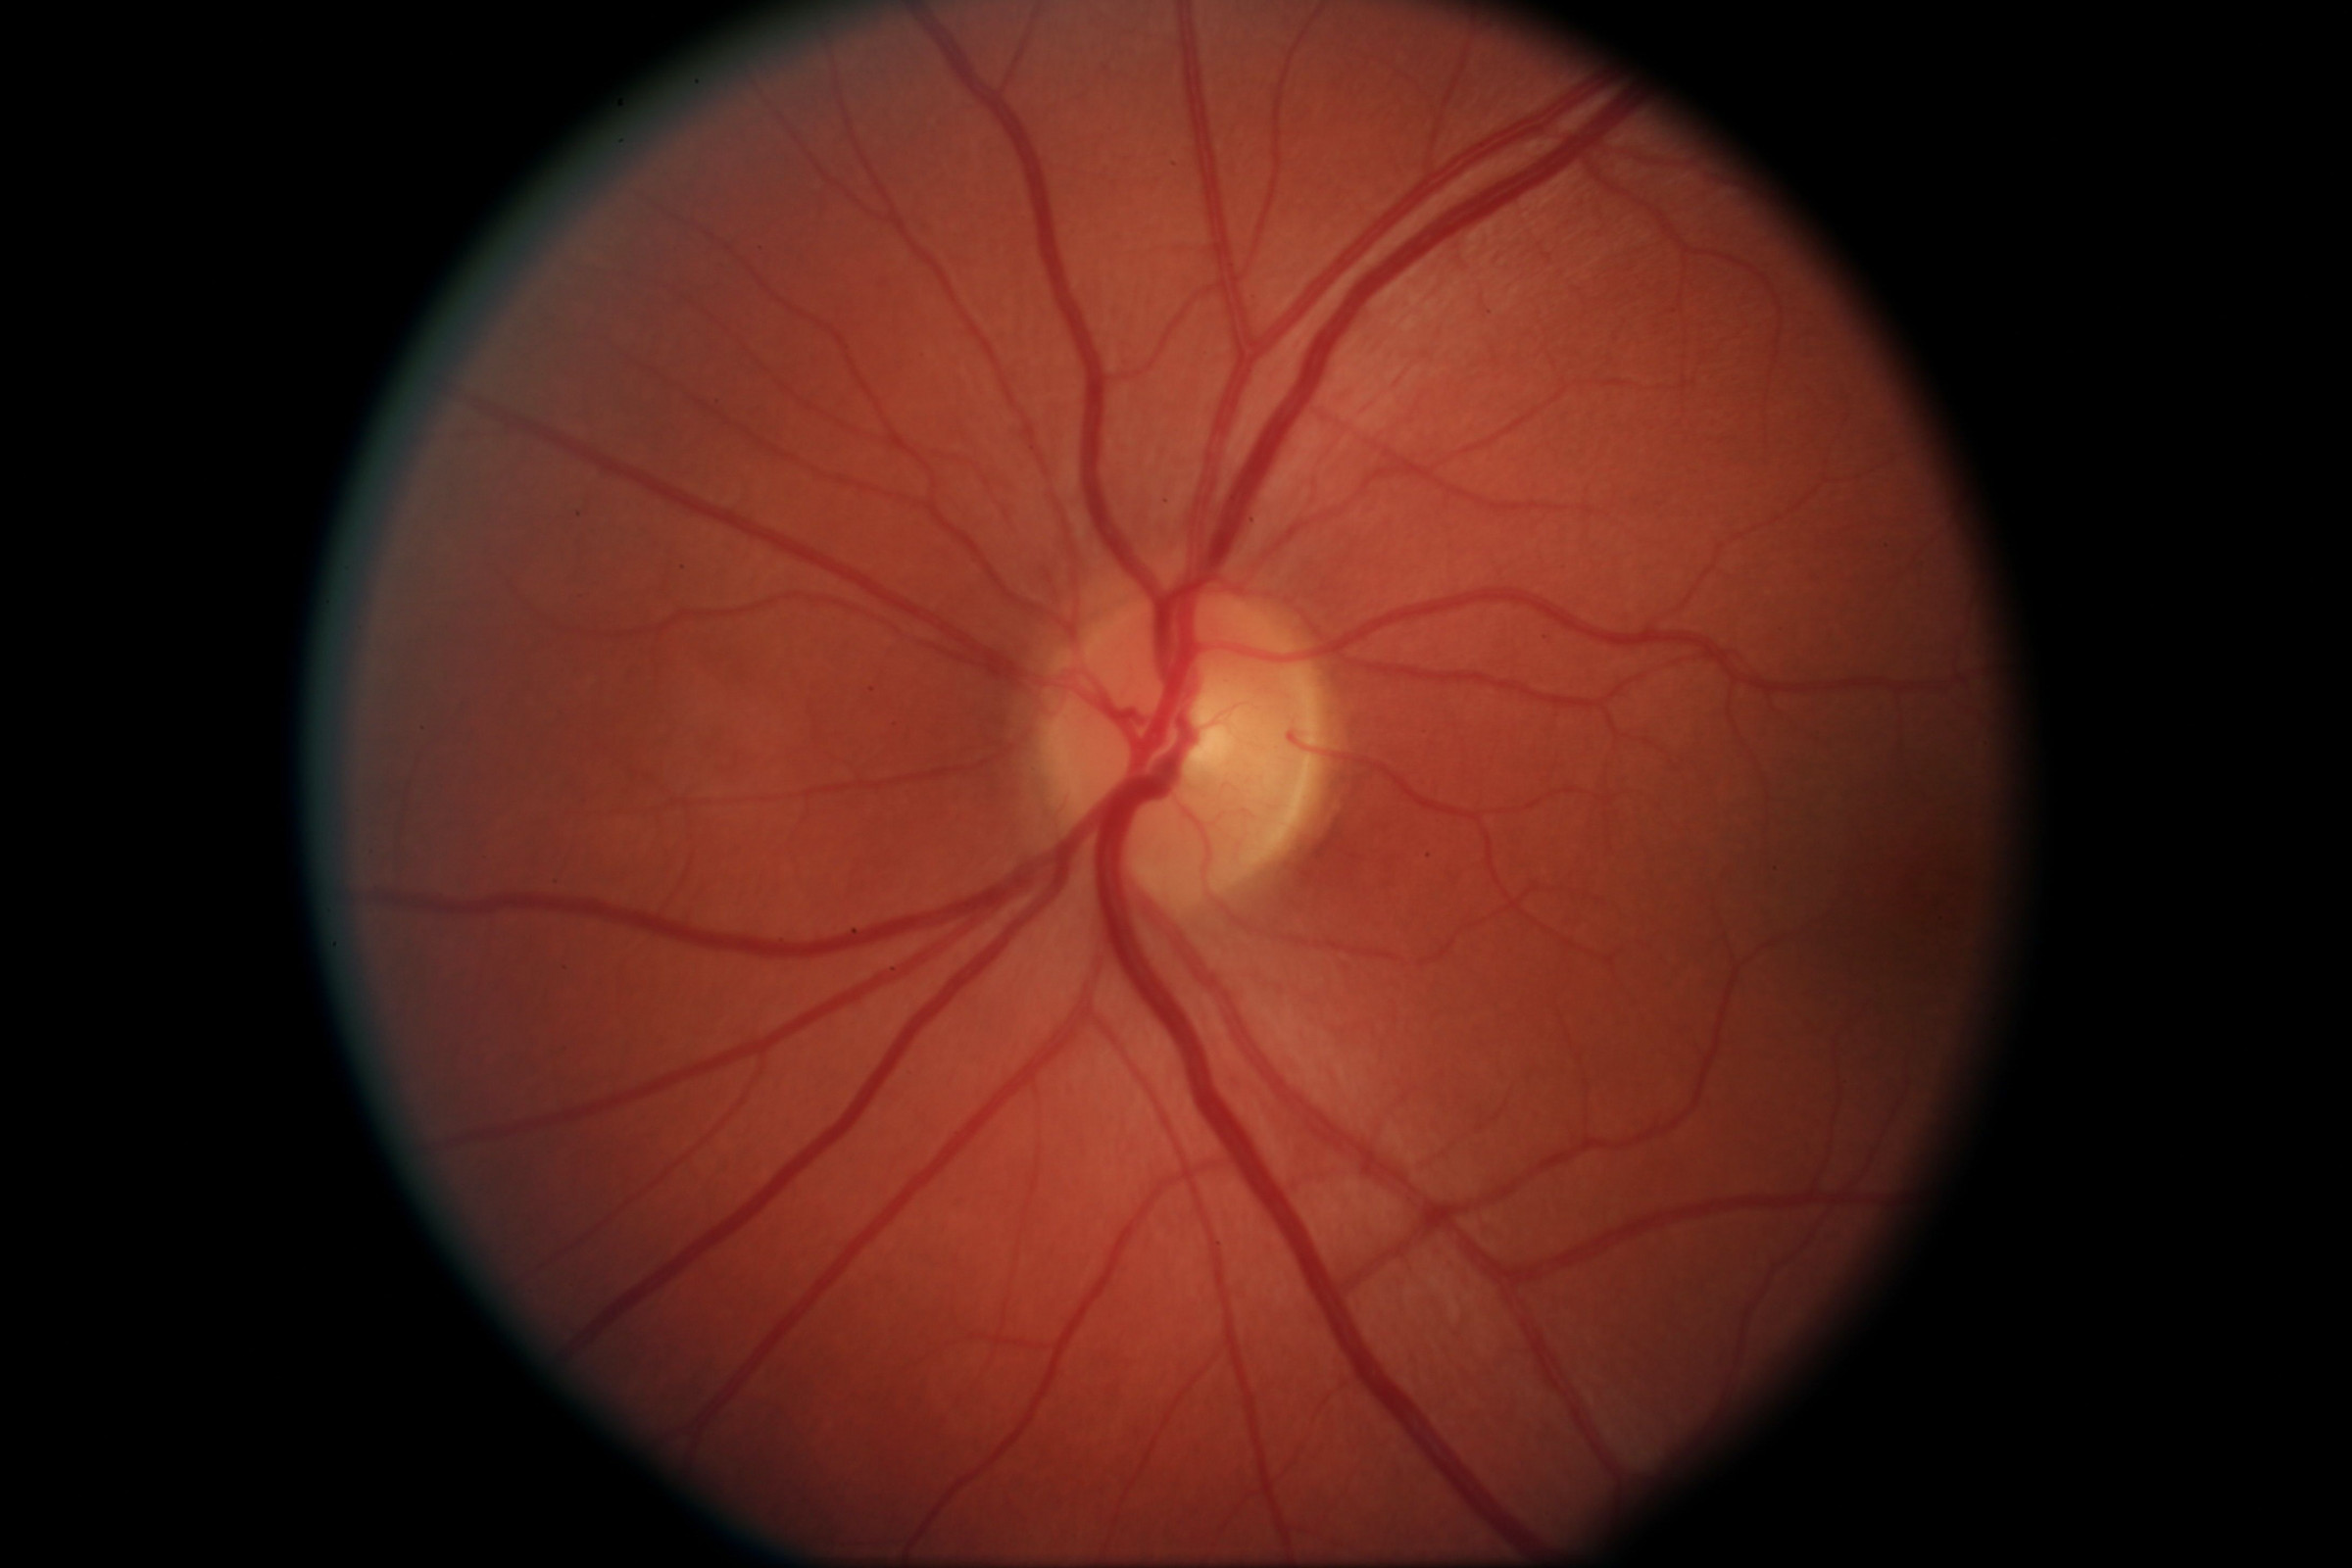 // <p>Left Optic Nerve</p>